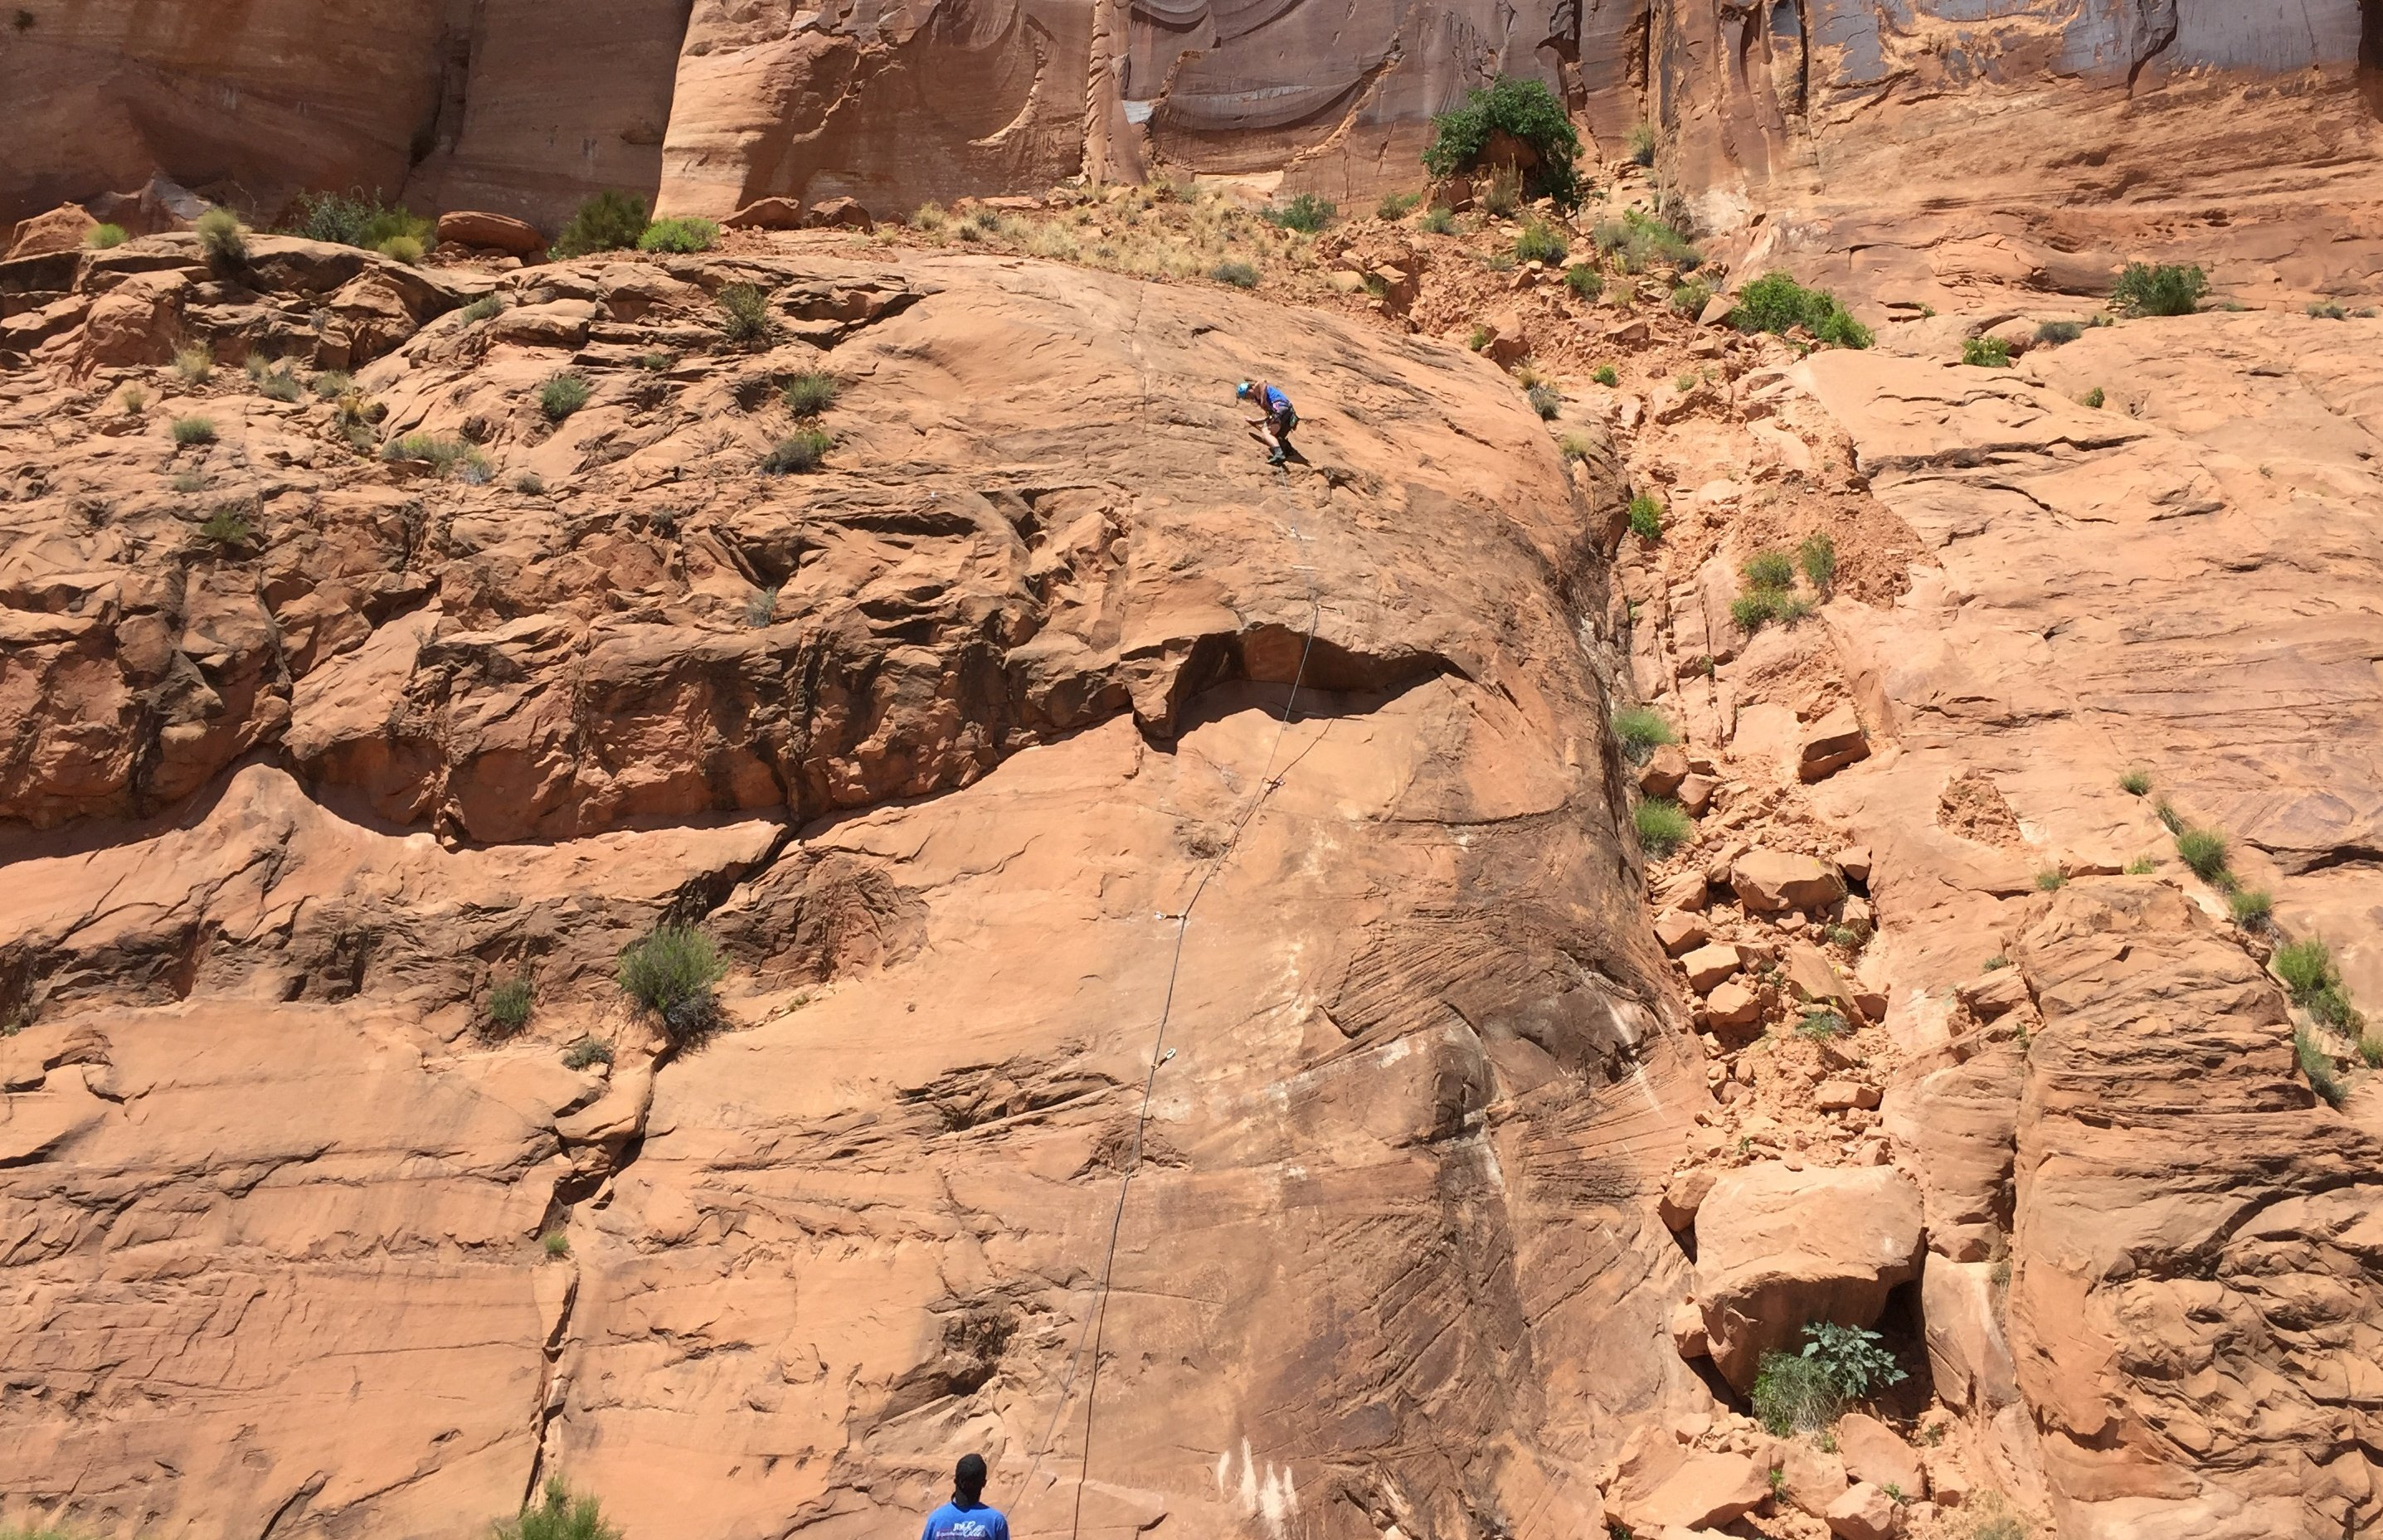 Casey Lead Climbing a Route in Moab